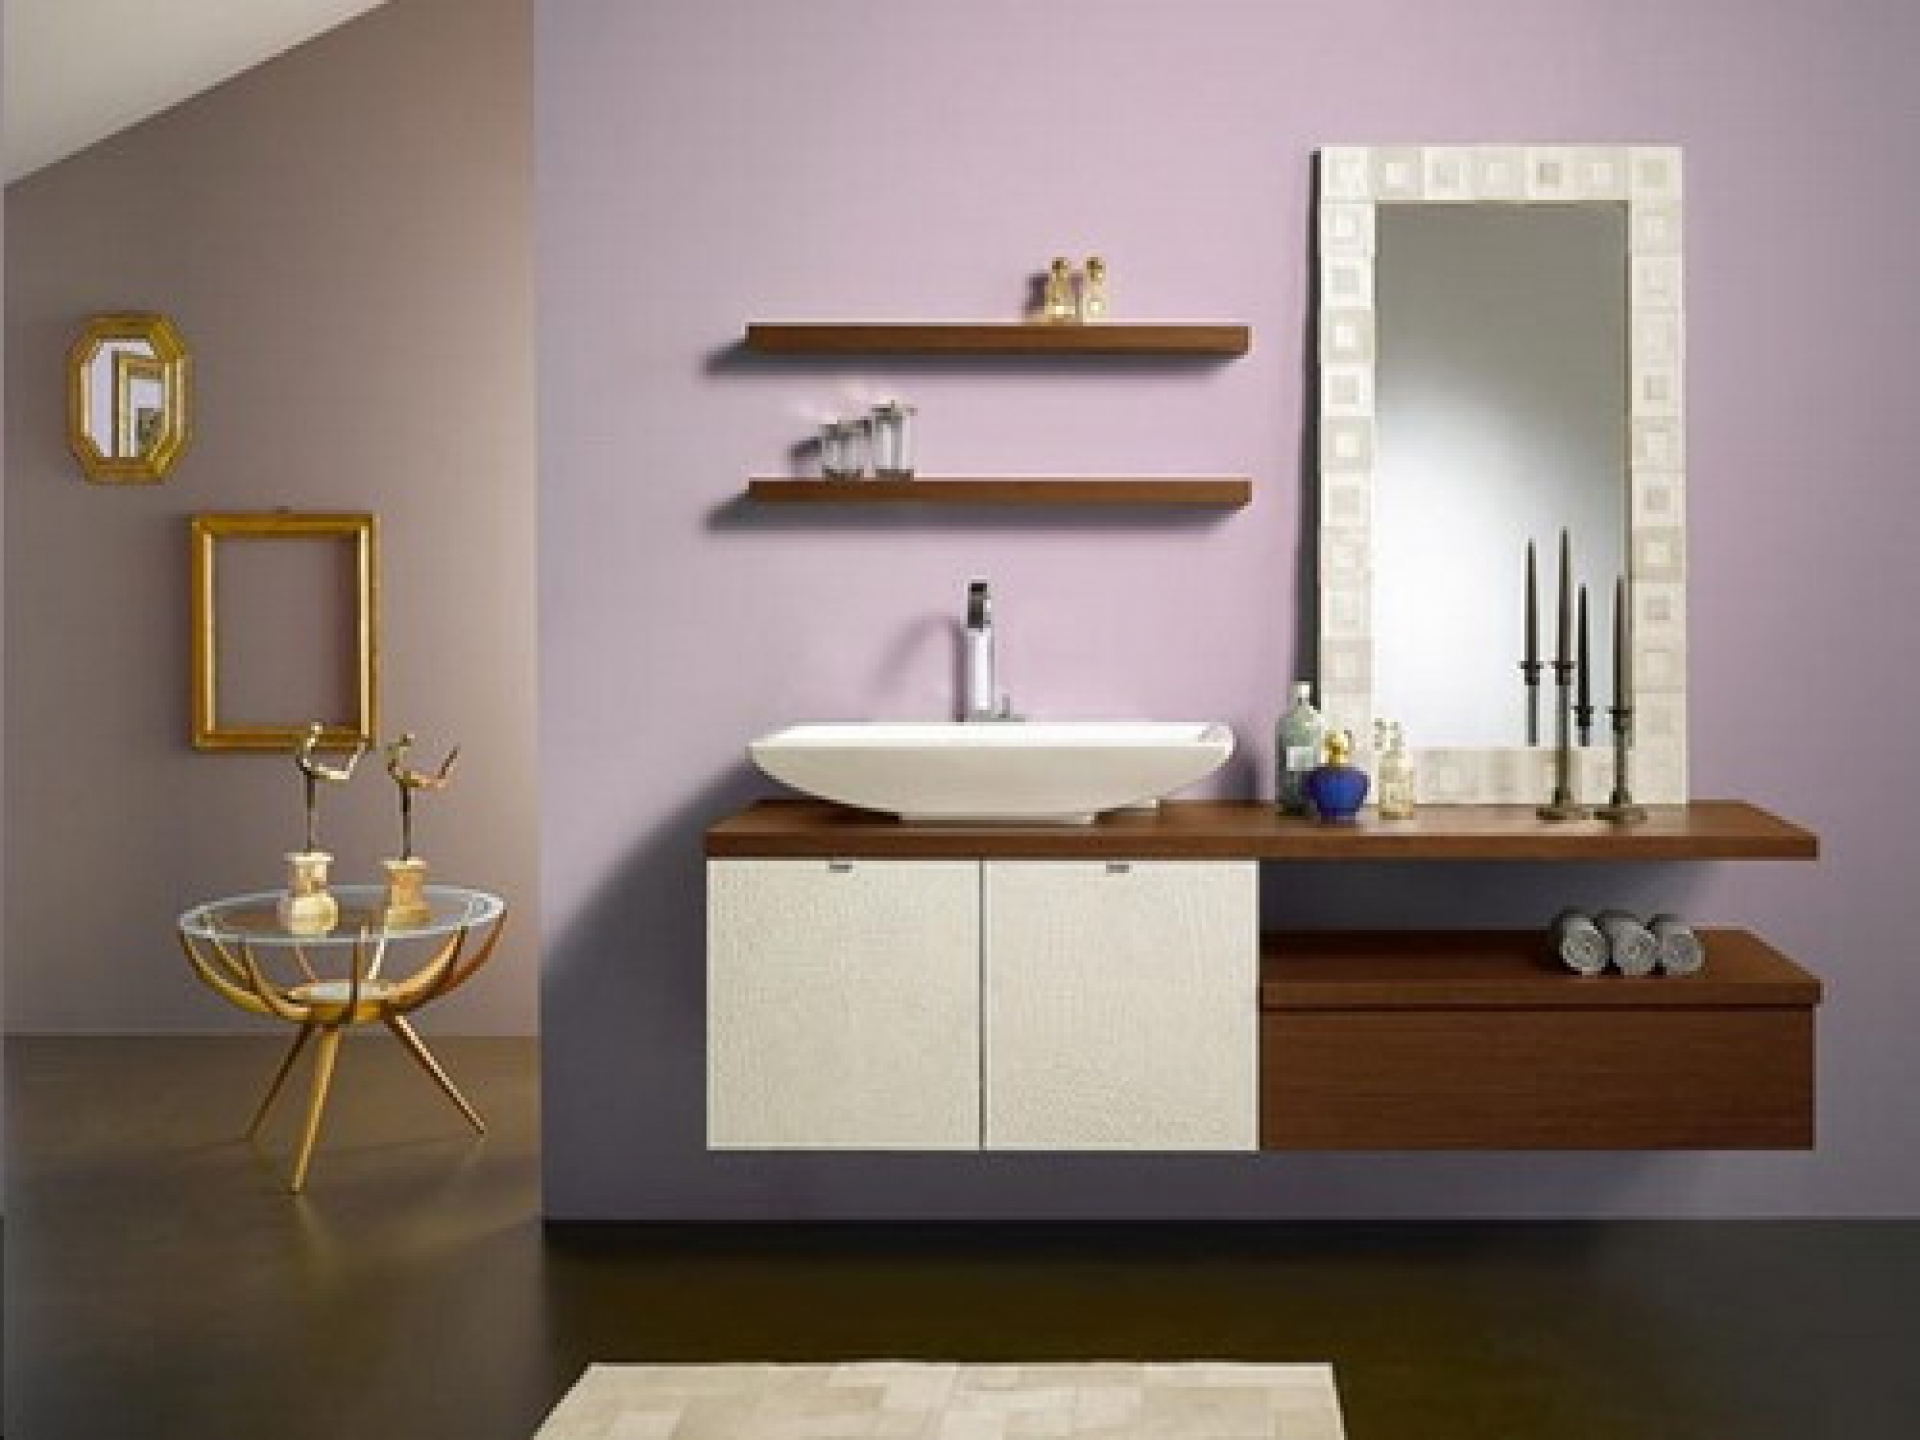 Picture of: Floating Bathroom Vanity Shelves